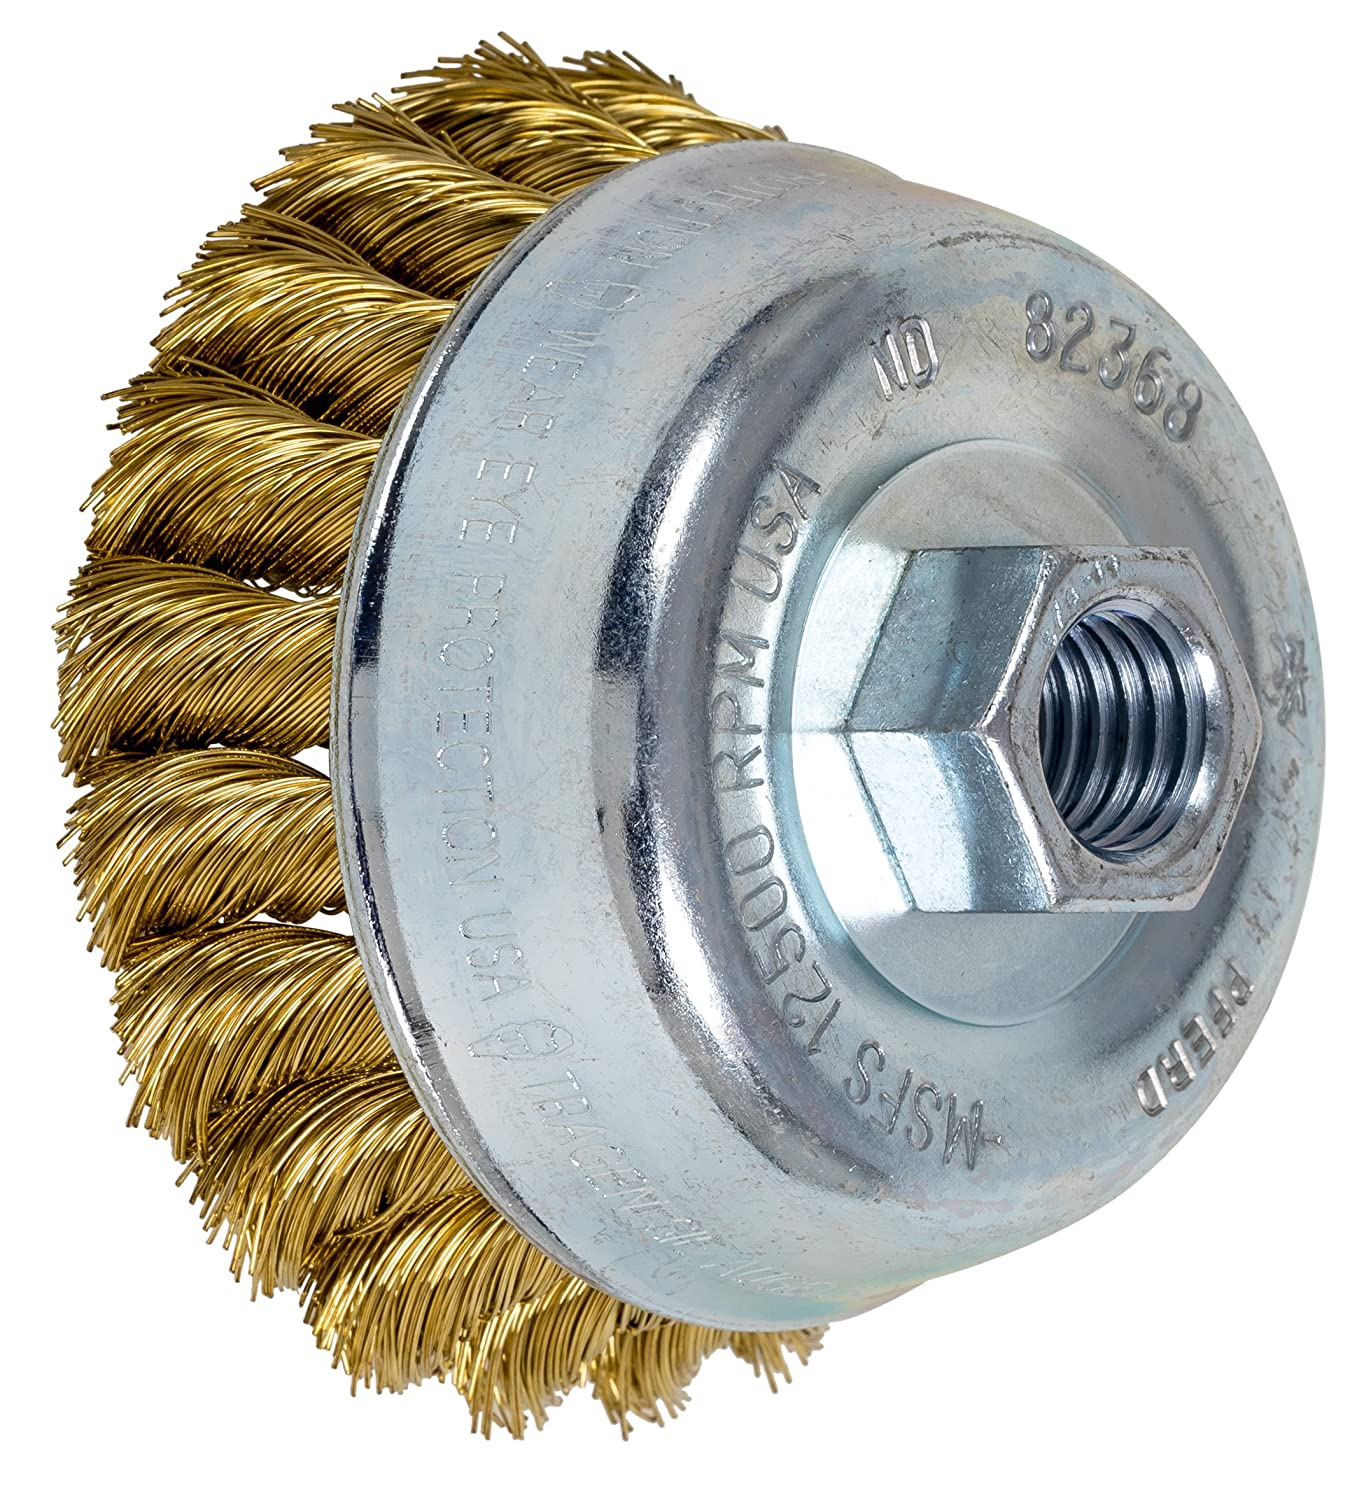 PFERD 82368 Standard Twist Knot Cup Brush, Brass Wire, 3-1/2' Diameter, 5/8-11 External Thread, 0.014 Wire Size, 7/8' Trim Length, 12500 RPM, POP Packaging 3-1/2 Diameter 7/8 Trim Length PFERD Inc.